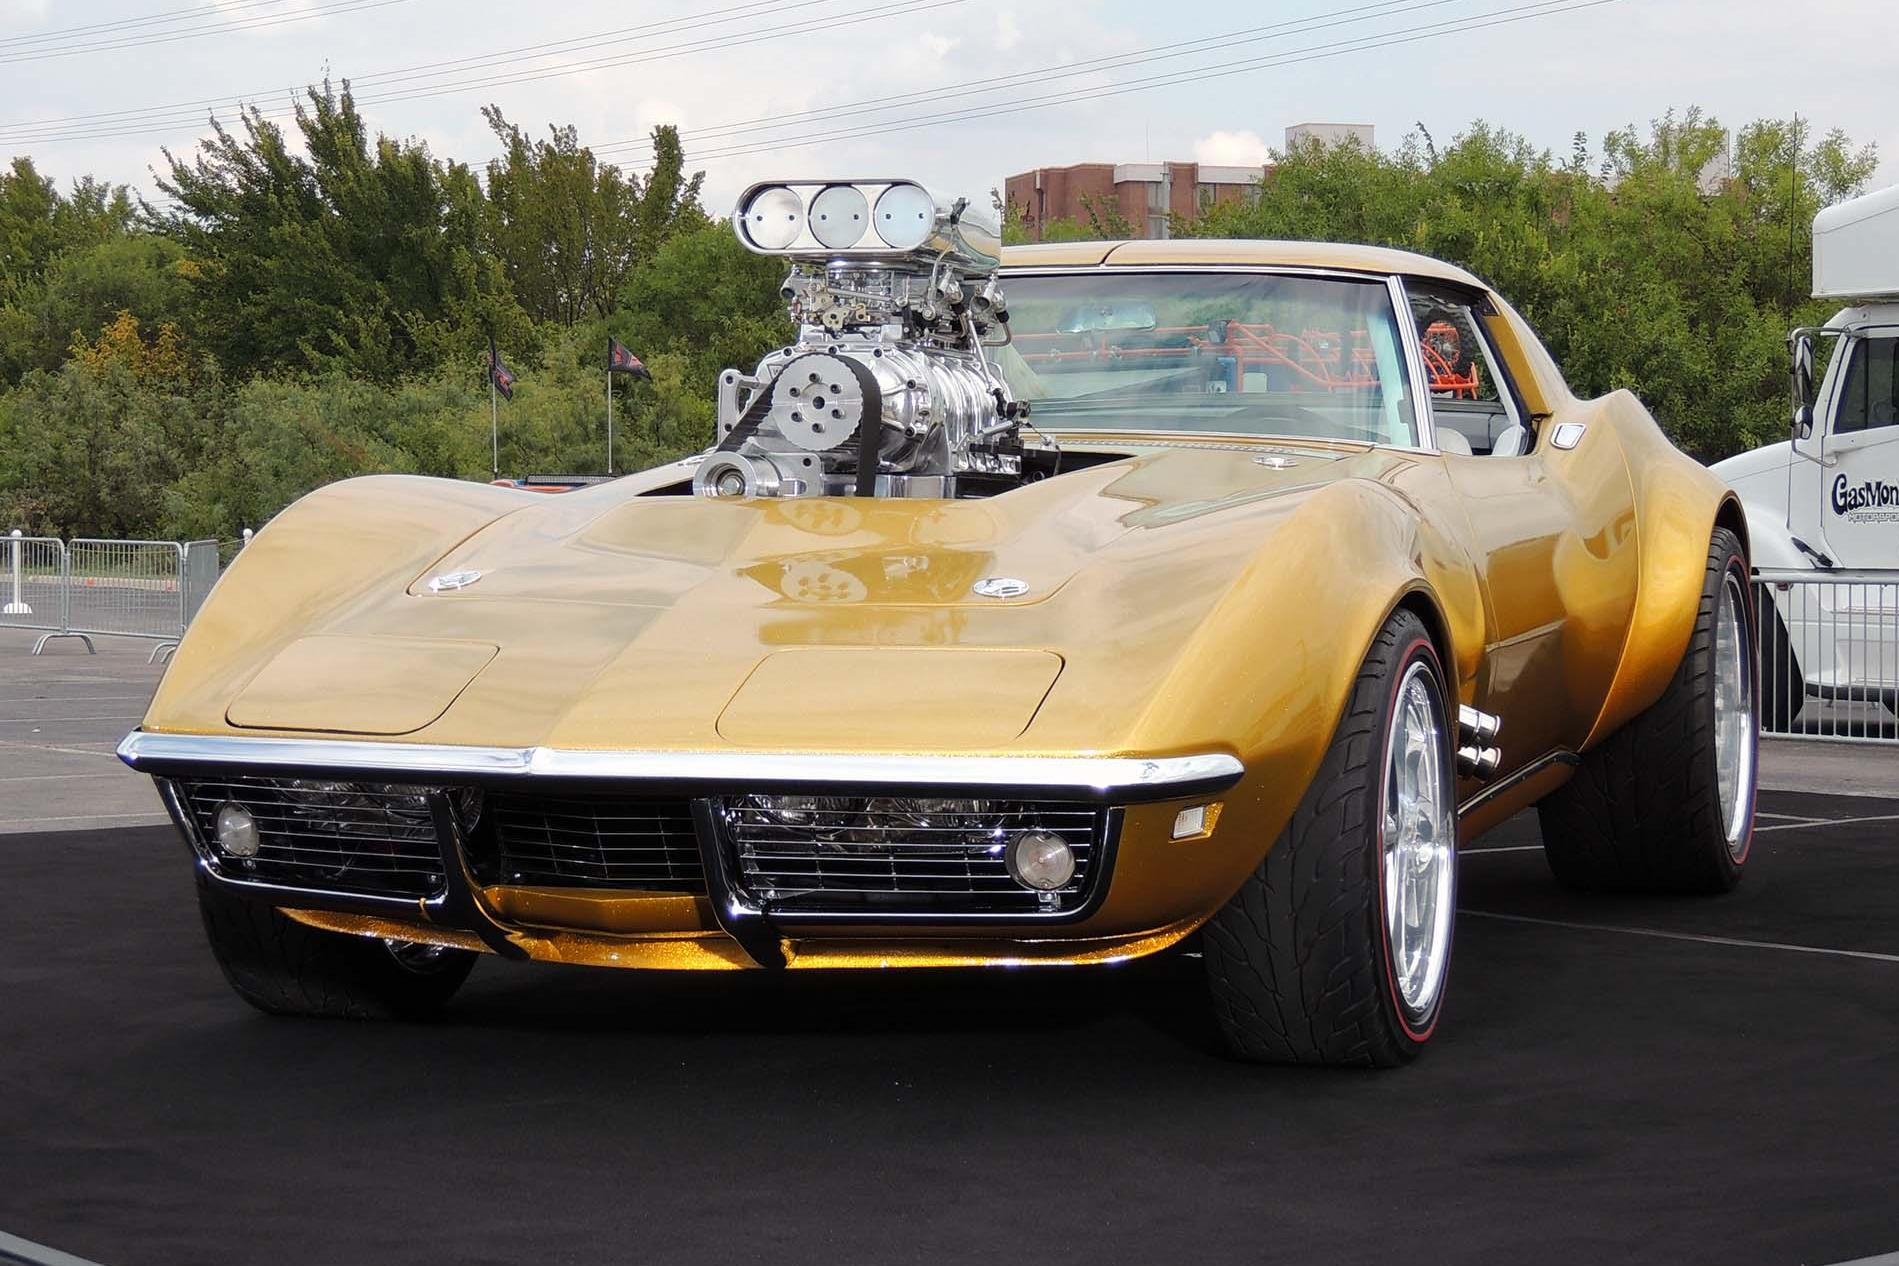 Gas Monkey Garage Builds Real Life Hot Wheels Corvette